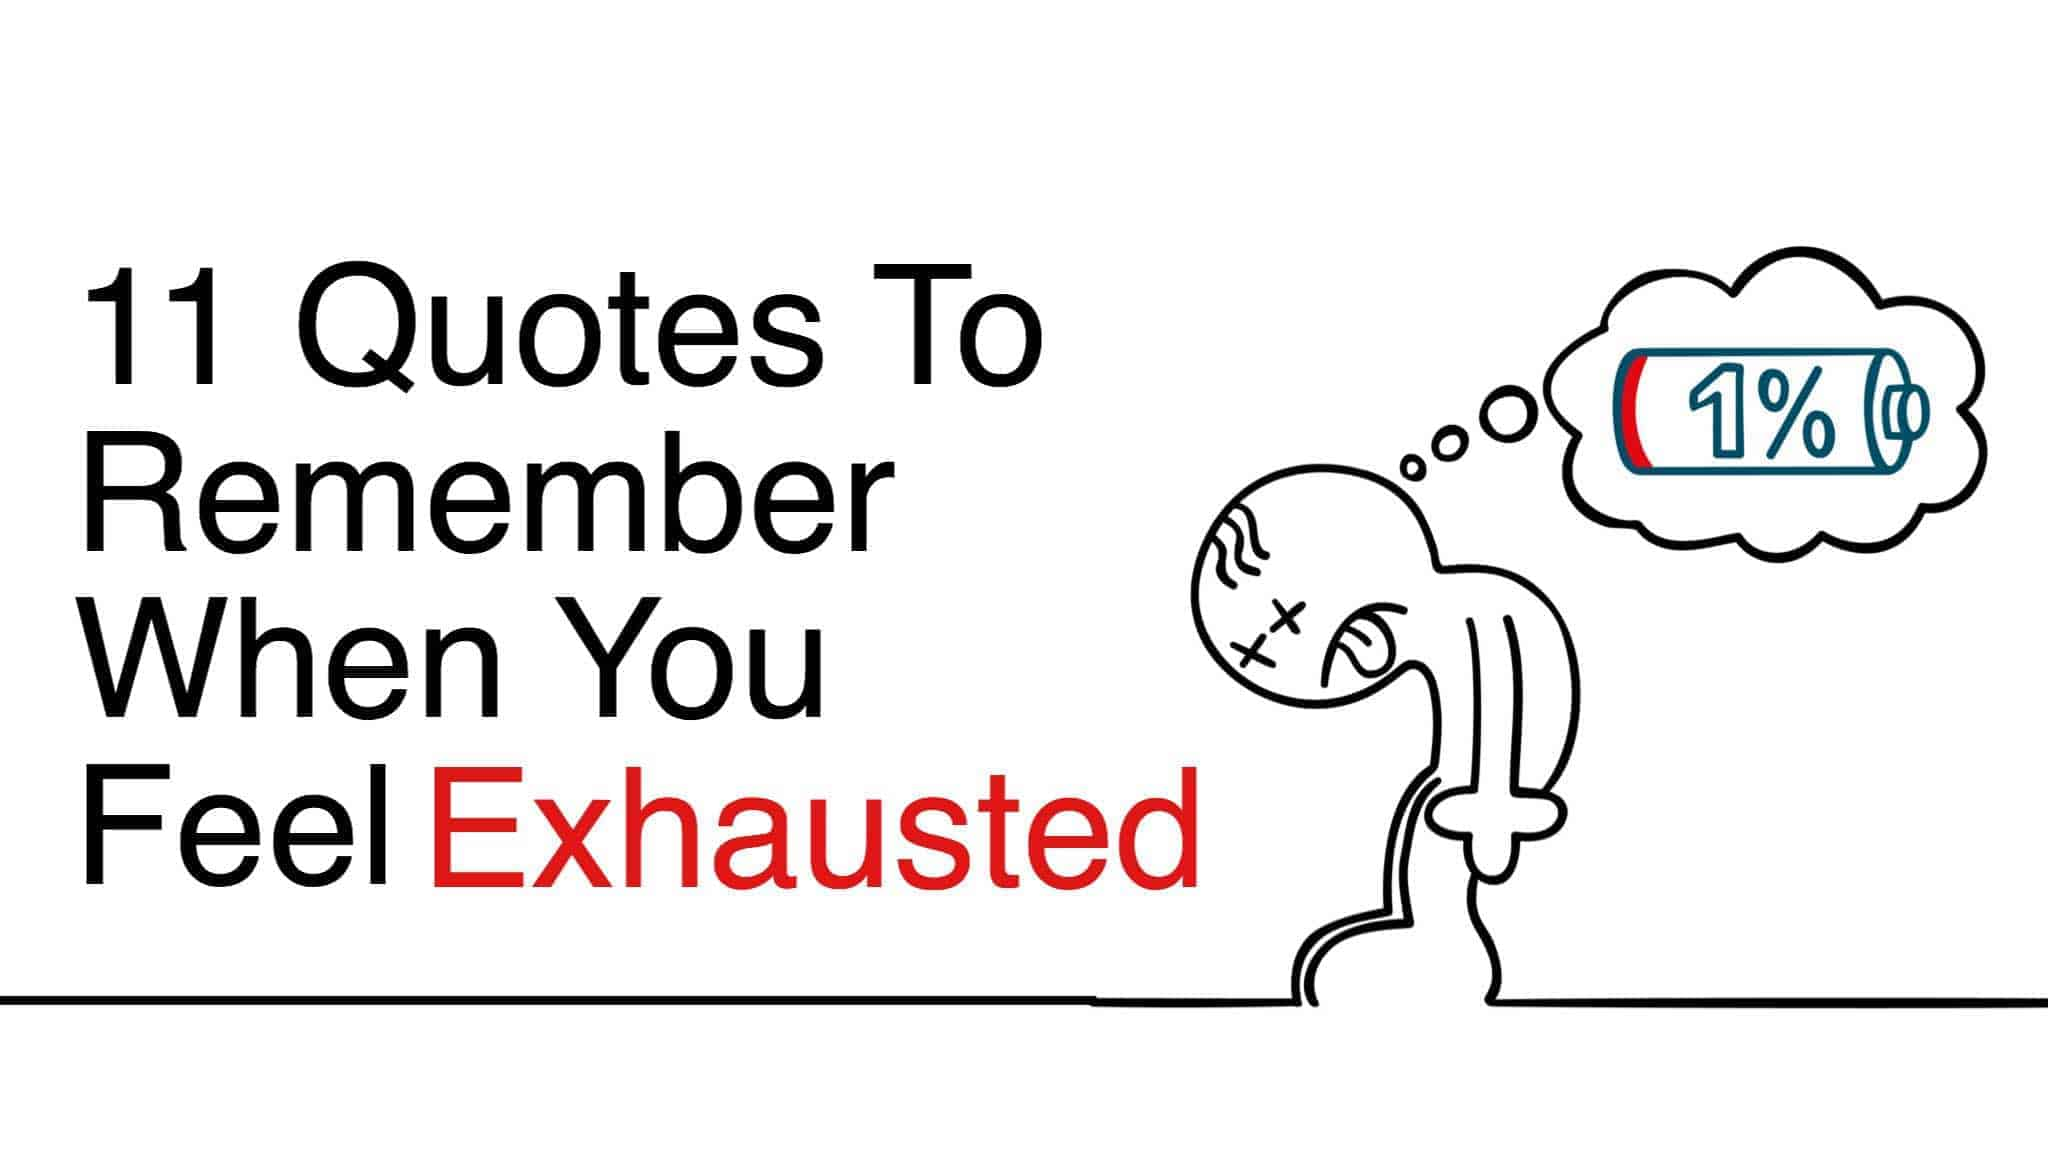 Quotes Quotes 11 Quotes To Remember When You Feel Exhausted